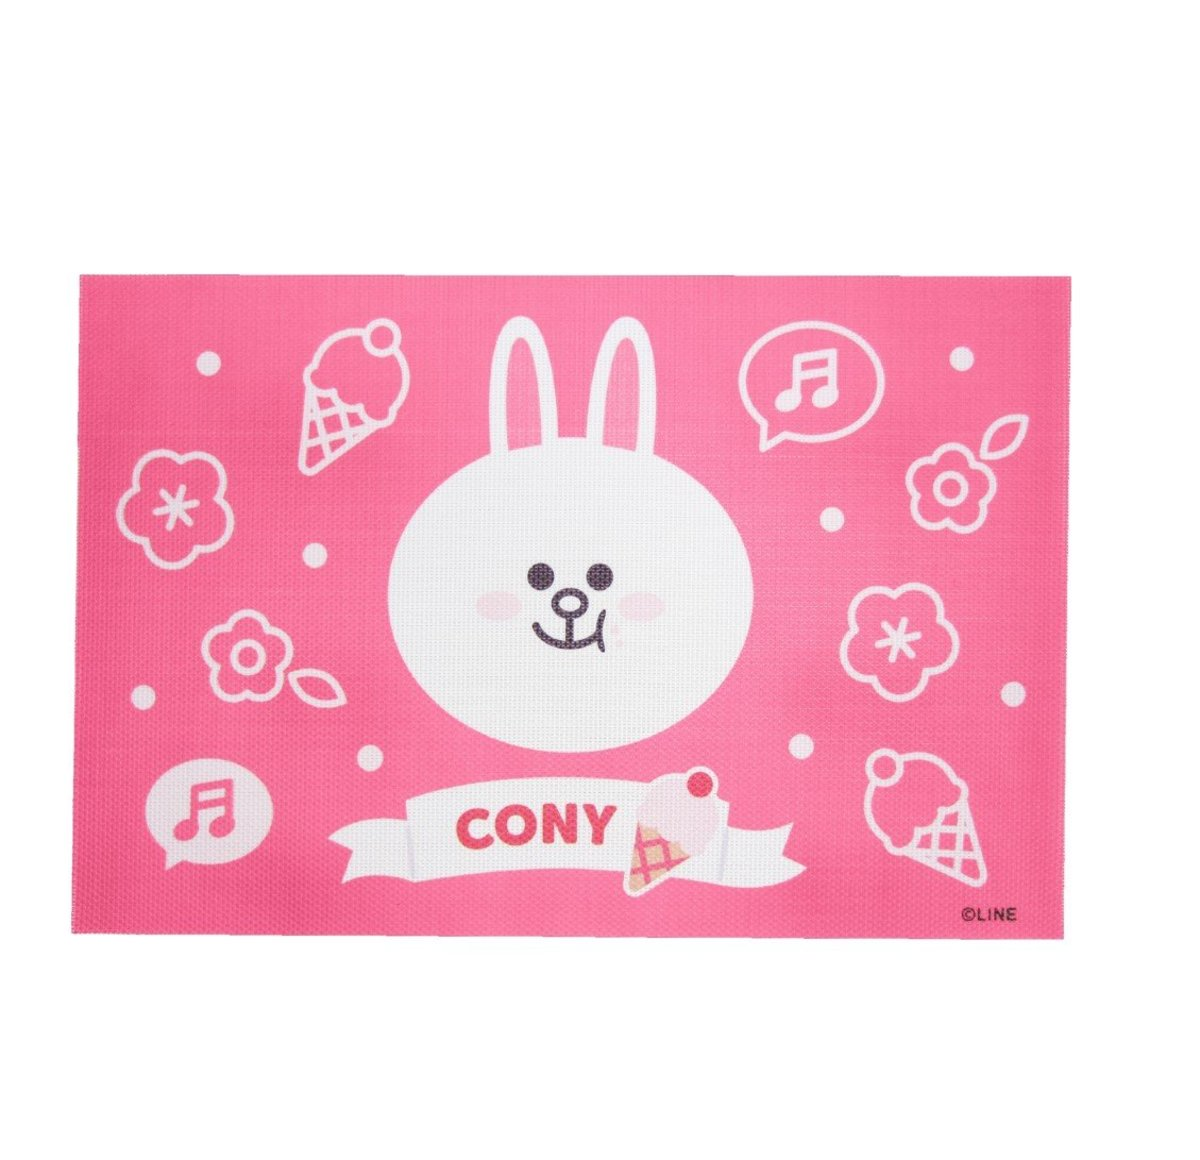 Fabric Placemat-Cony